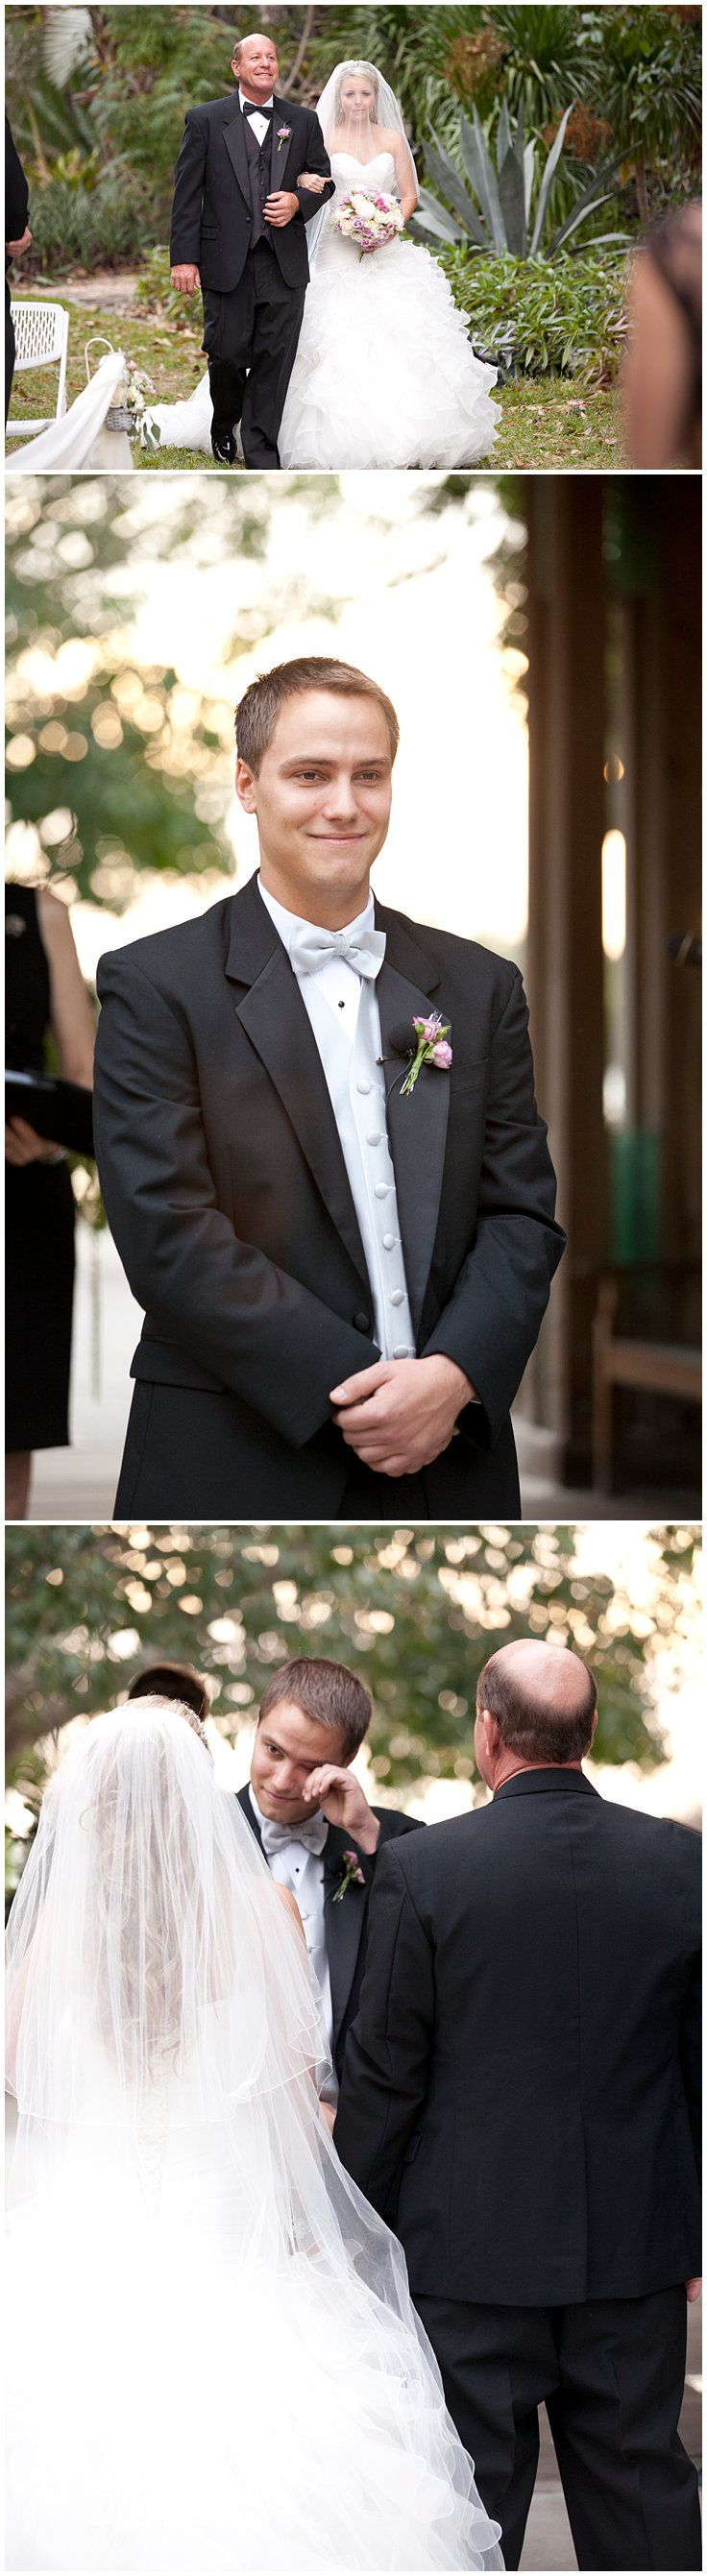 Groom's reaction as bride comes down the aisle with her father. Bride and groom crying as she walks down the aisle. Elegant, fall wedding at Marie Selby Botanical Gardens in Sarasota, Florida. © Degrees North Images #groom